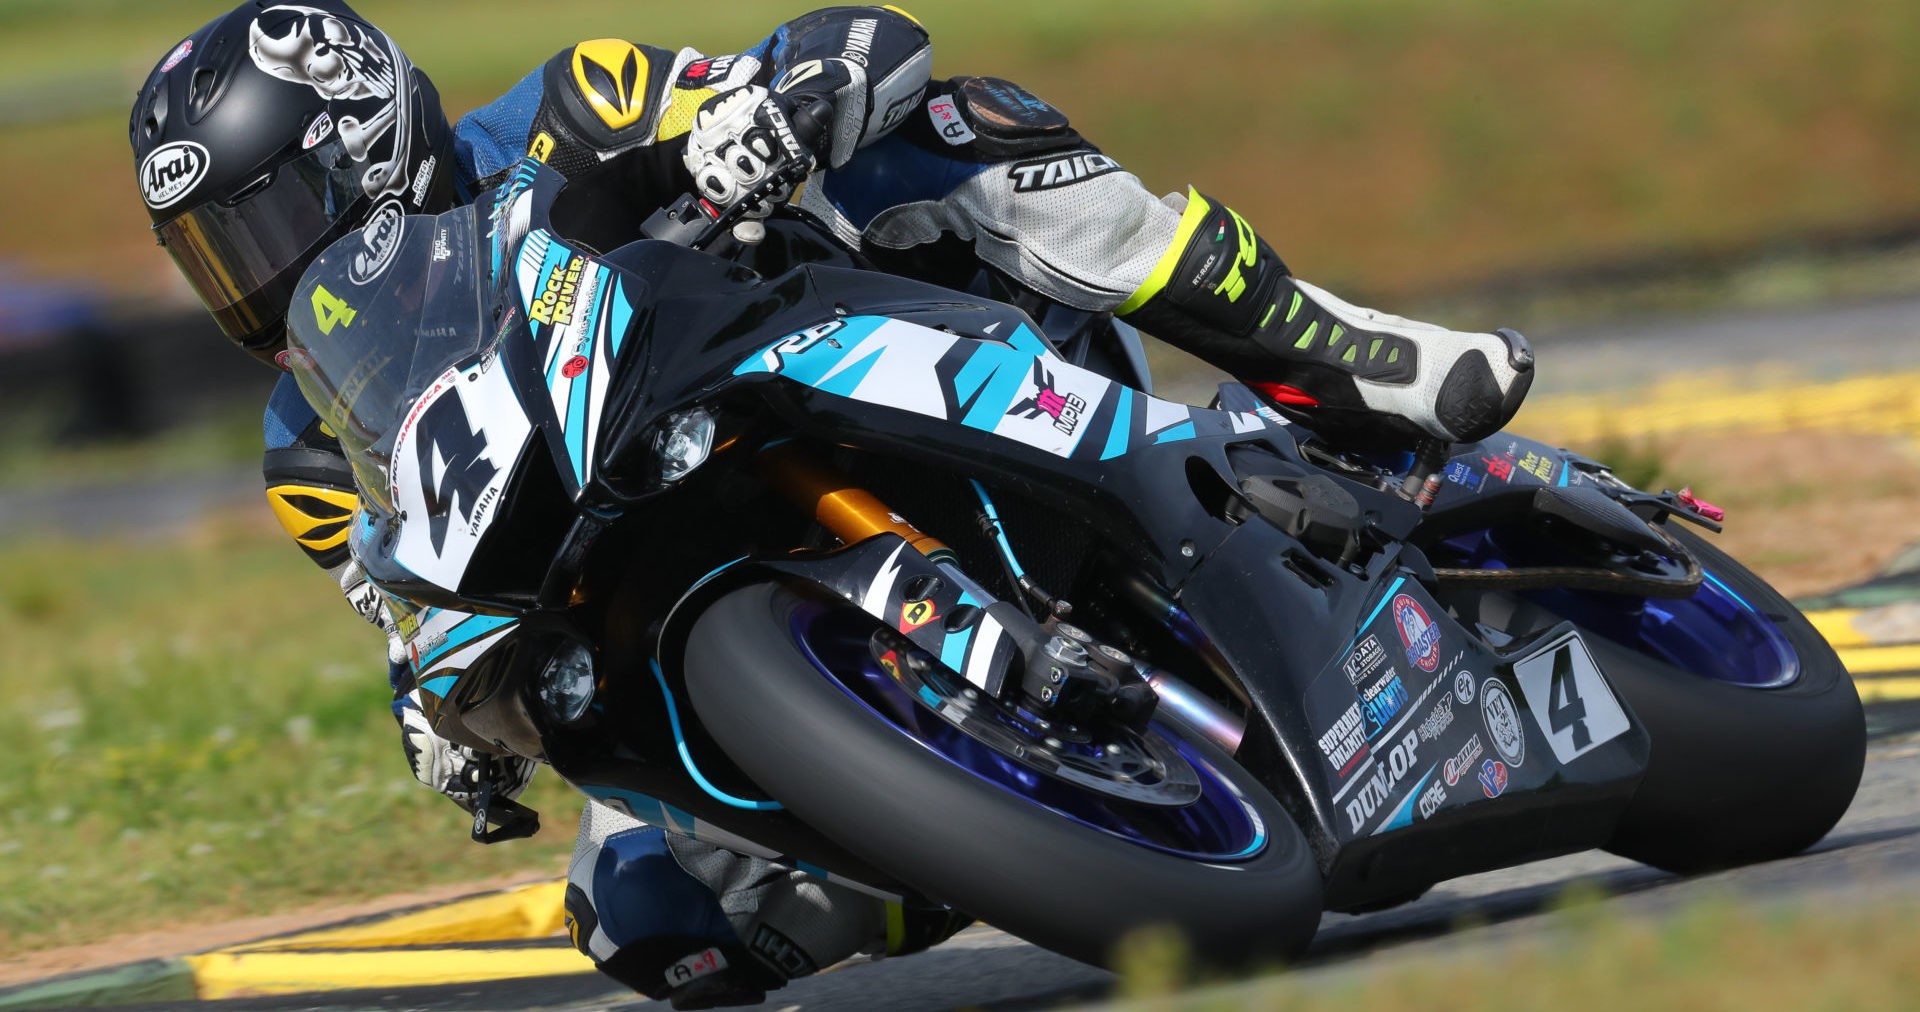 Josh Hayes (4) at speed on his MP13 Racing Yamaha YZF-R6. Photo by Brian J. Nelson.